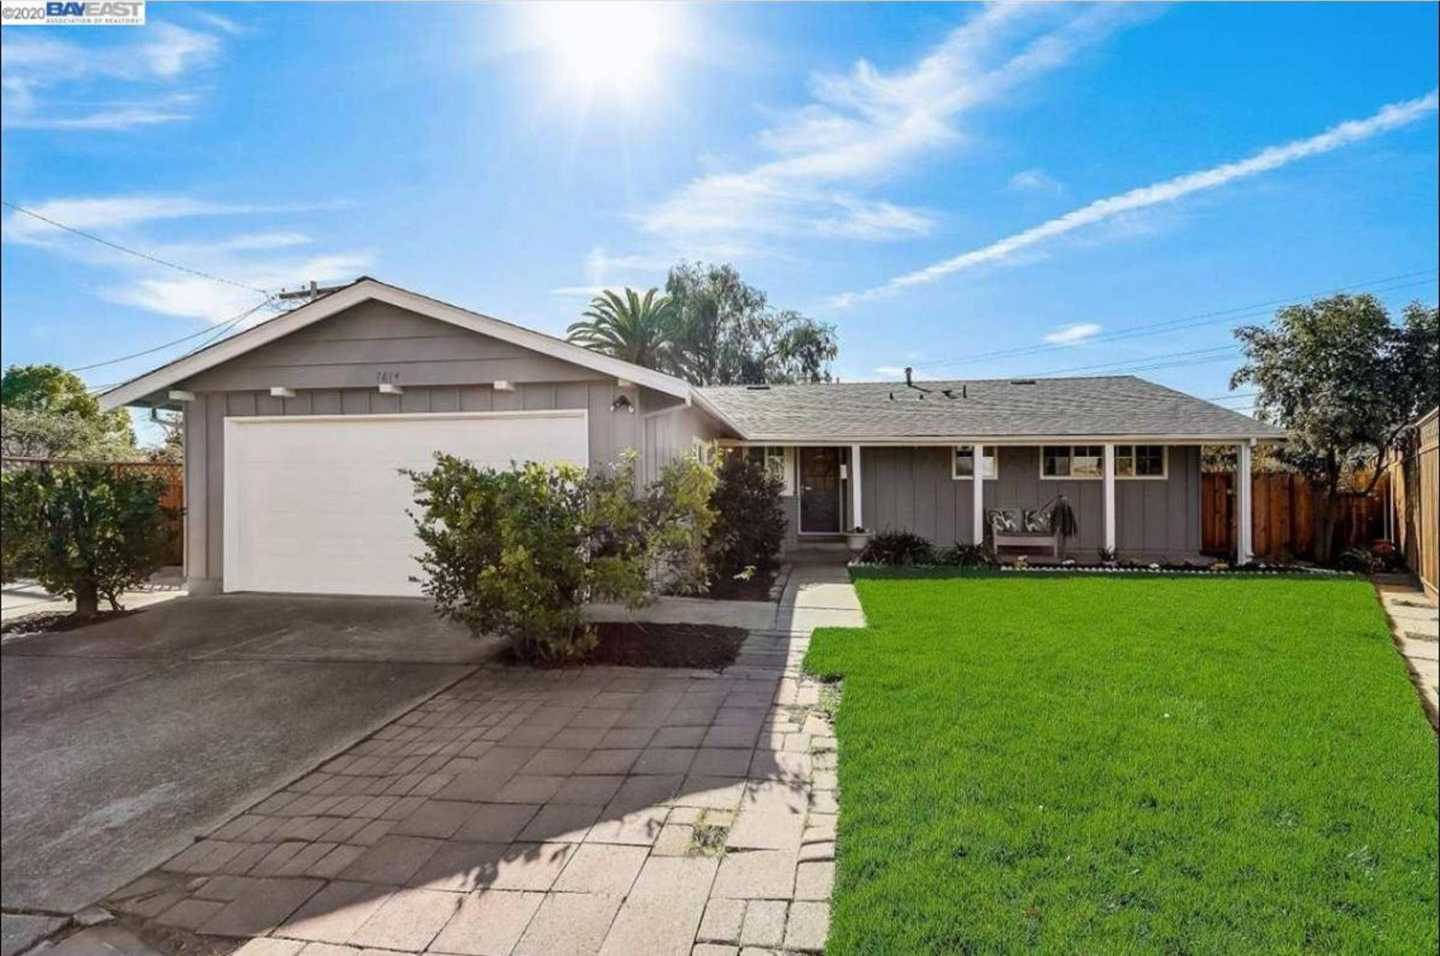 $2,545,000 - 4Br/3Ba -  for Sale in Cupertino